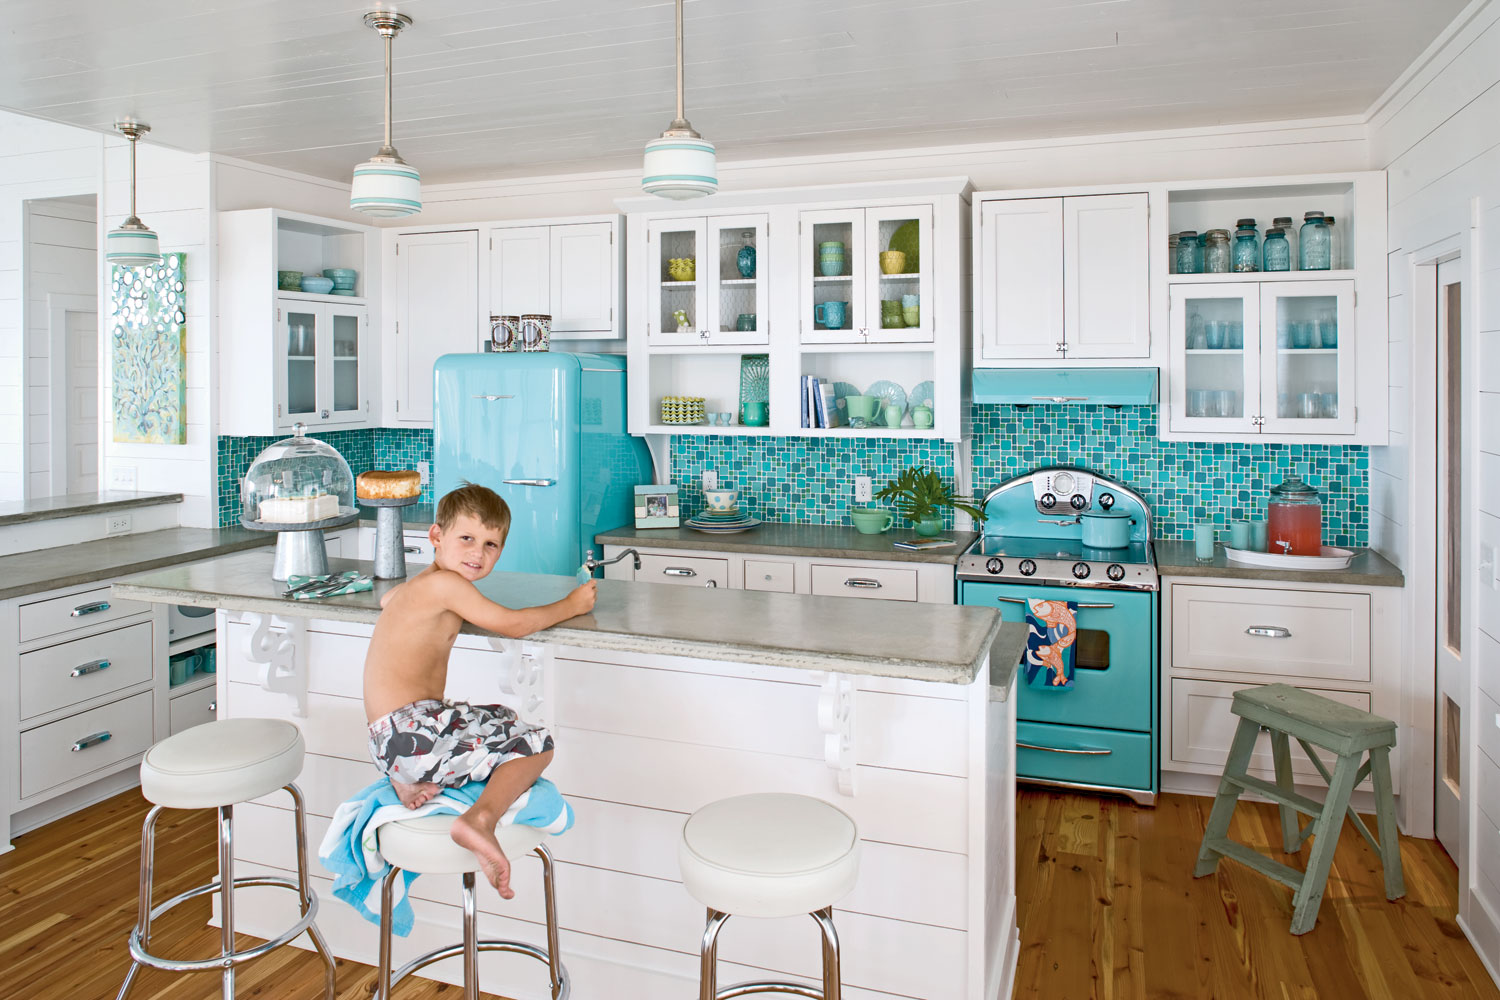 In these kitchens, color makes a tastefully cheerful statement ...